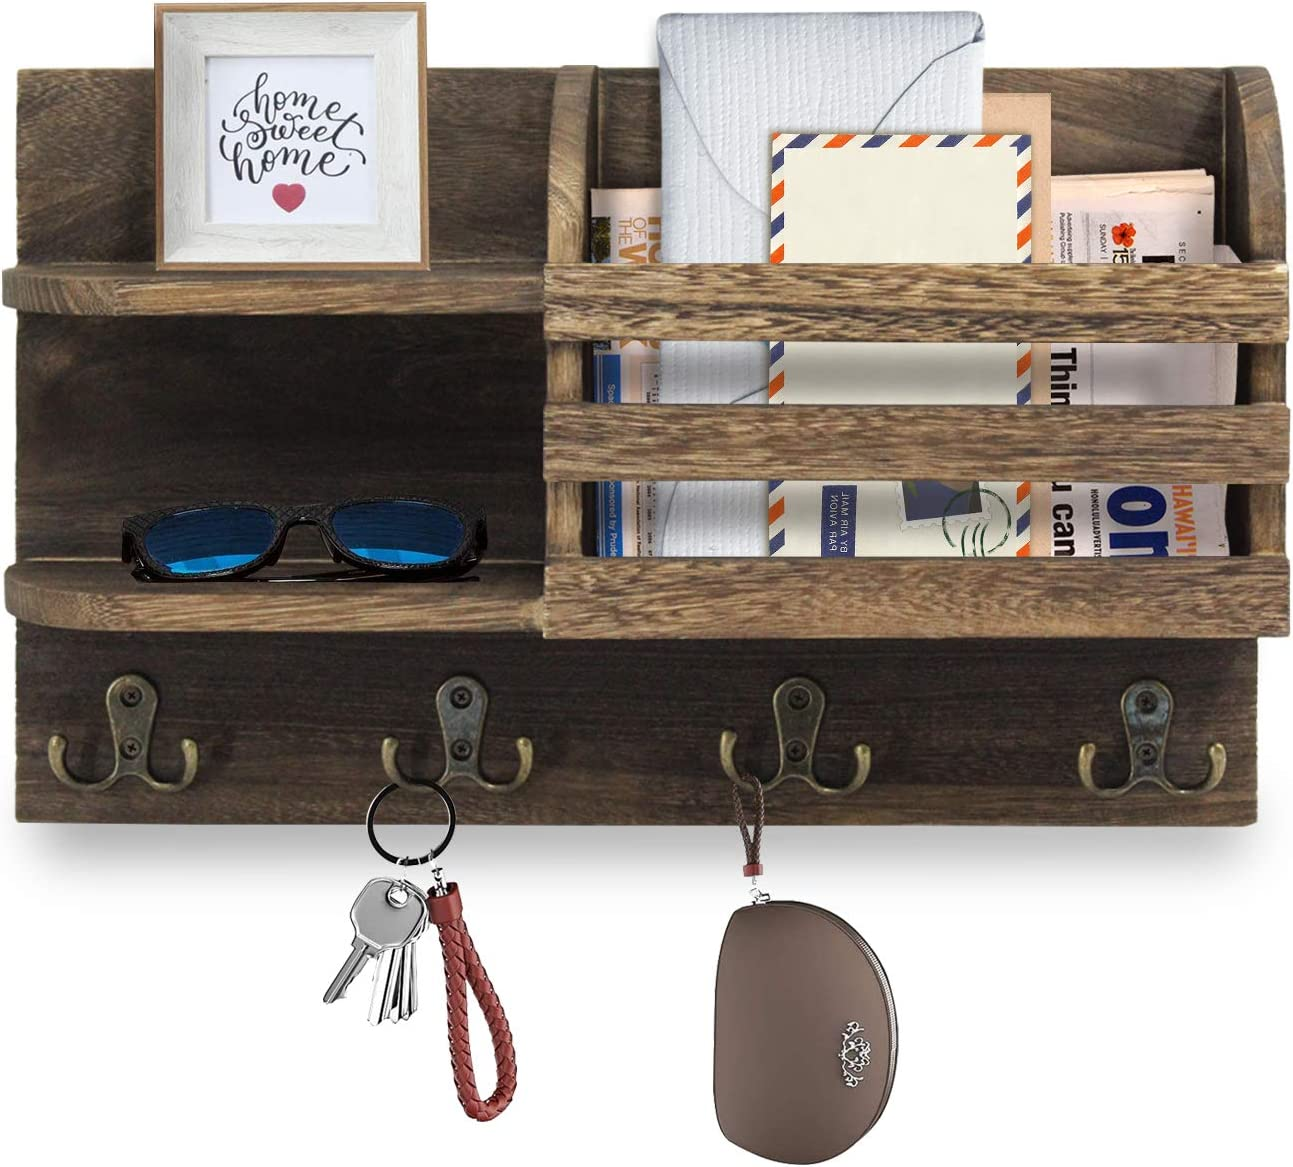 R&MD Wall Mounted Mail Holder Floating Shelves with Hooks, Wood Wall Organizer Sorter for Keys, Letters, Bills, Key Holder for Wall Decorative, Home Decor and Storage for Entryway, Hallway, Kitchen